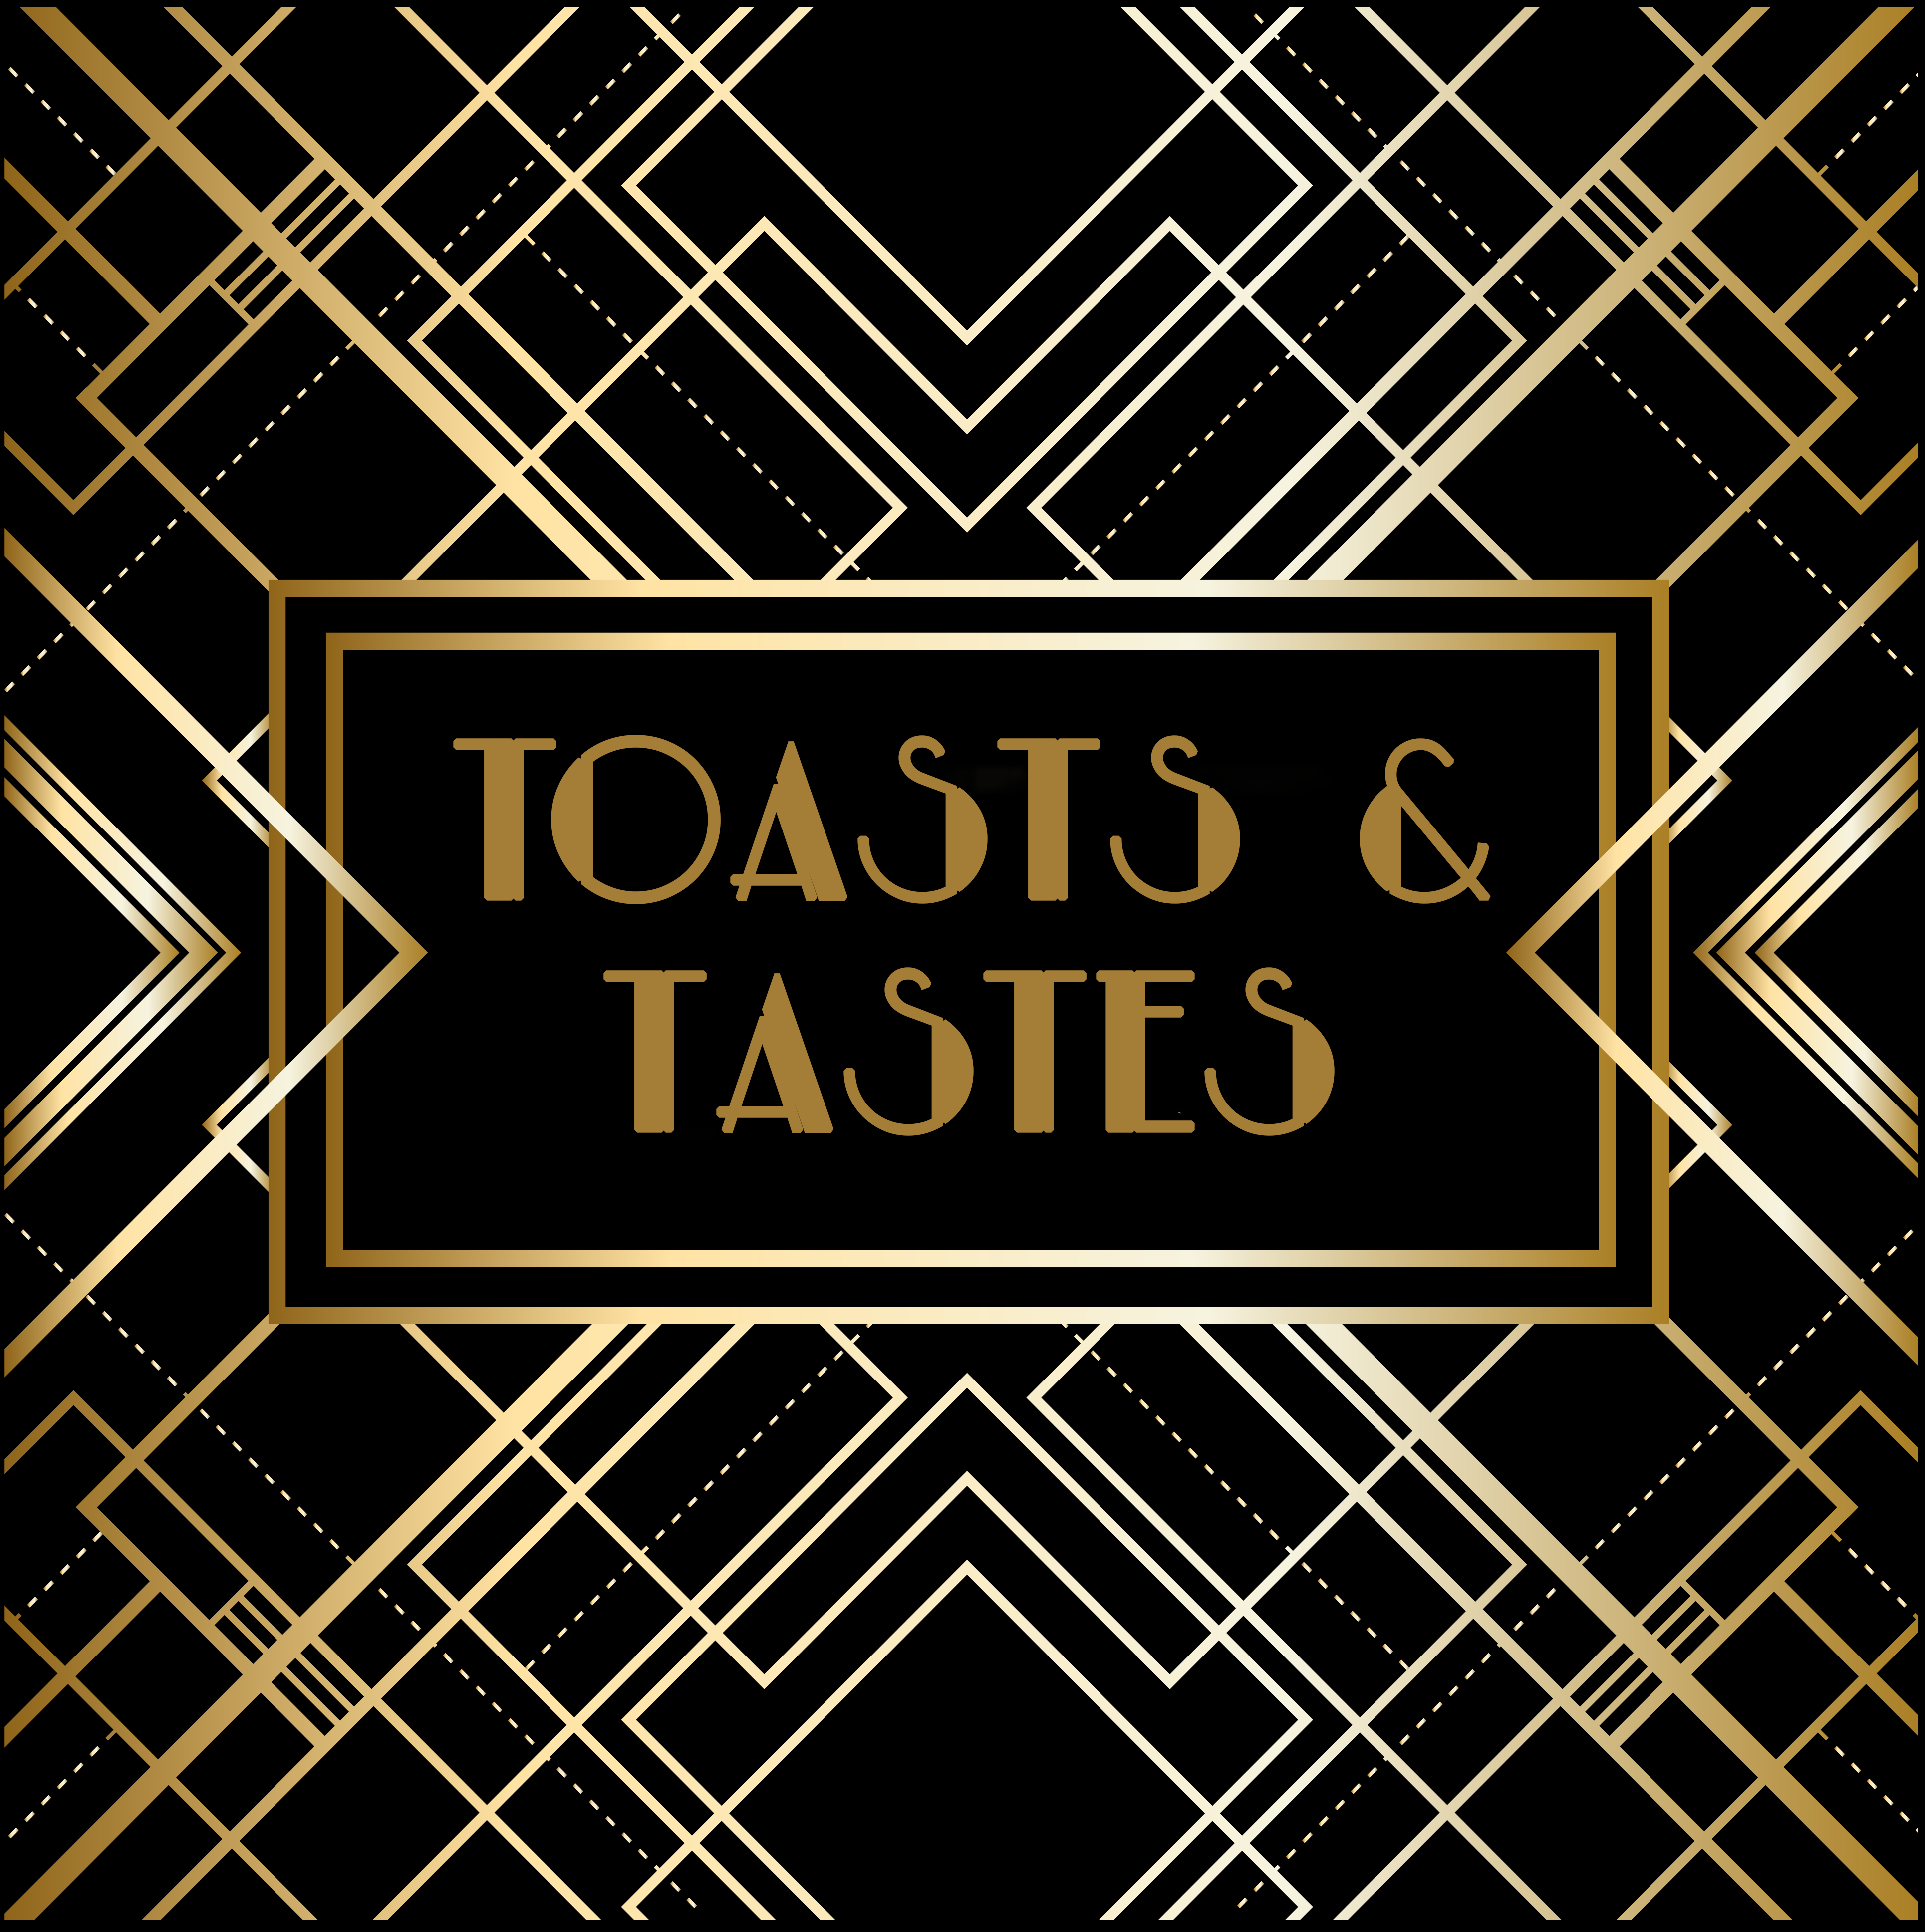 Toasts and Tastes 2020